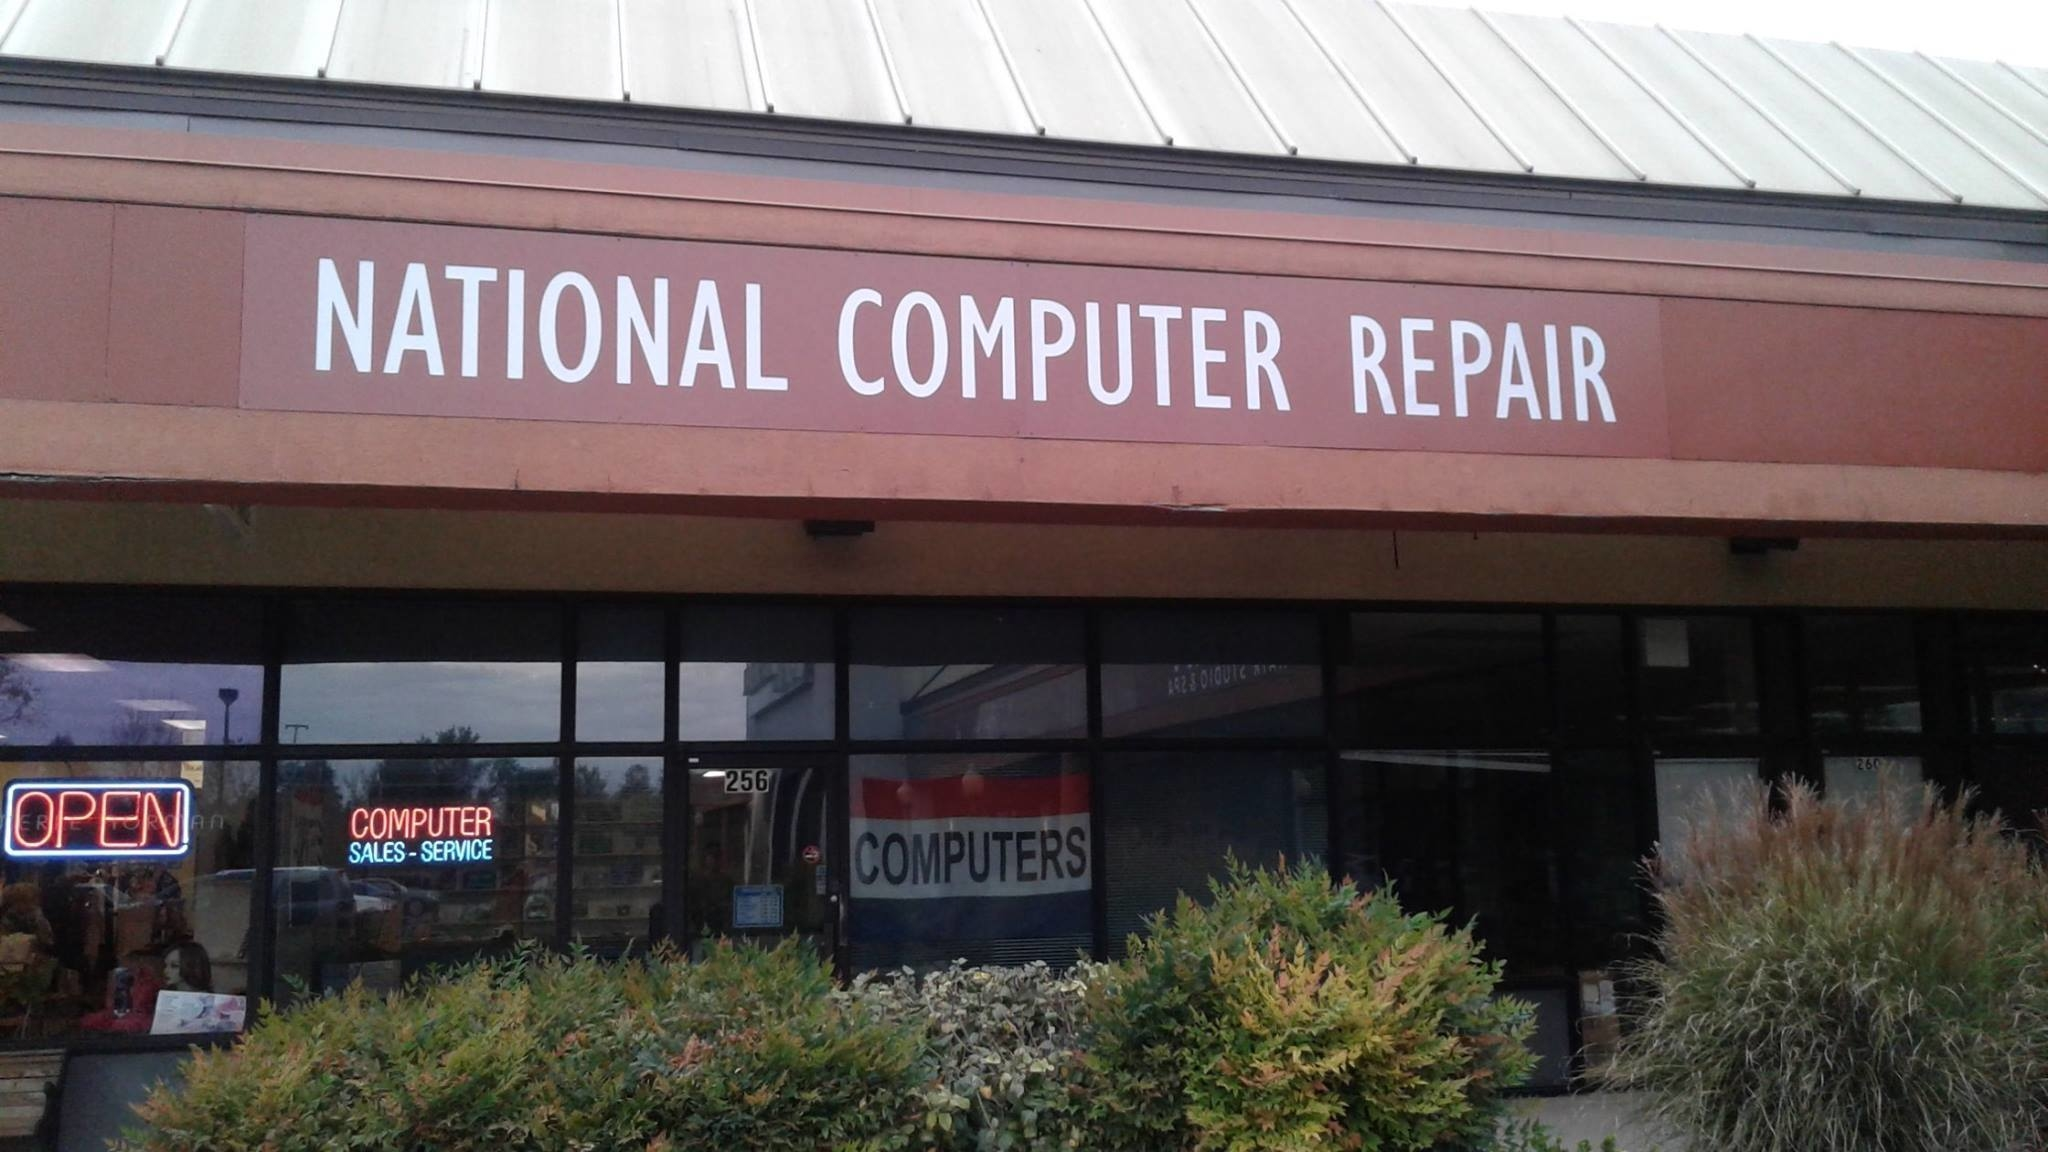 National Computer Repair image 1